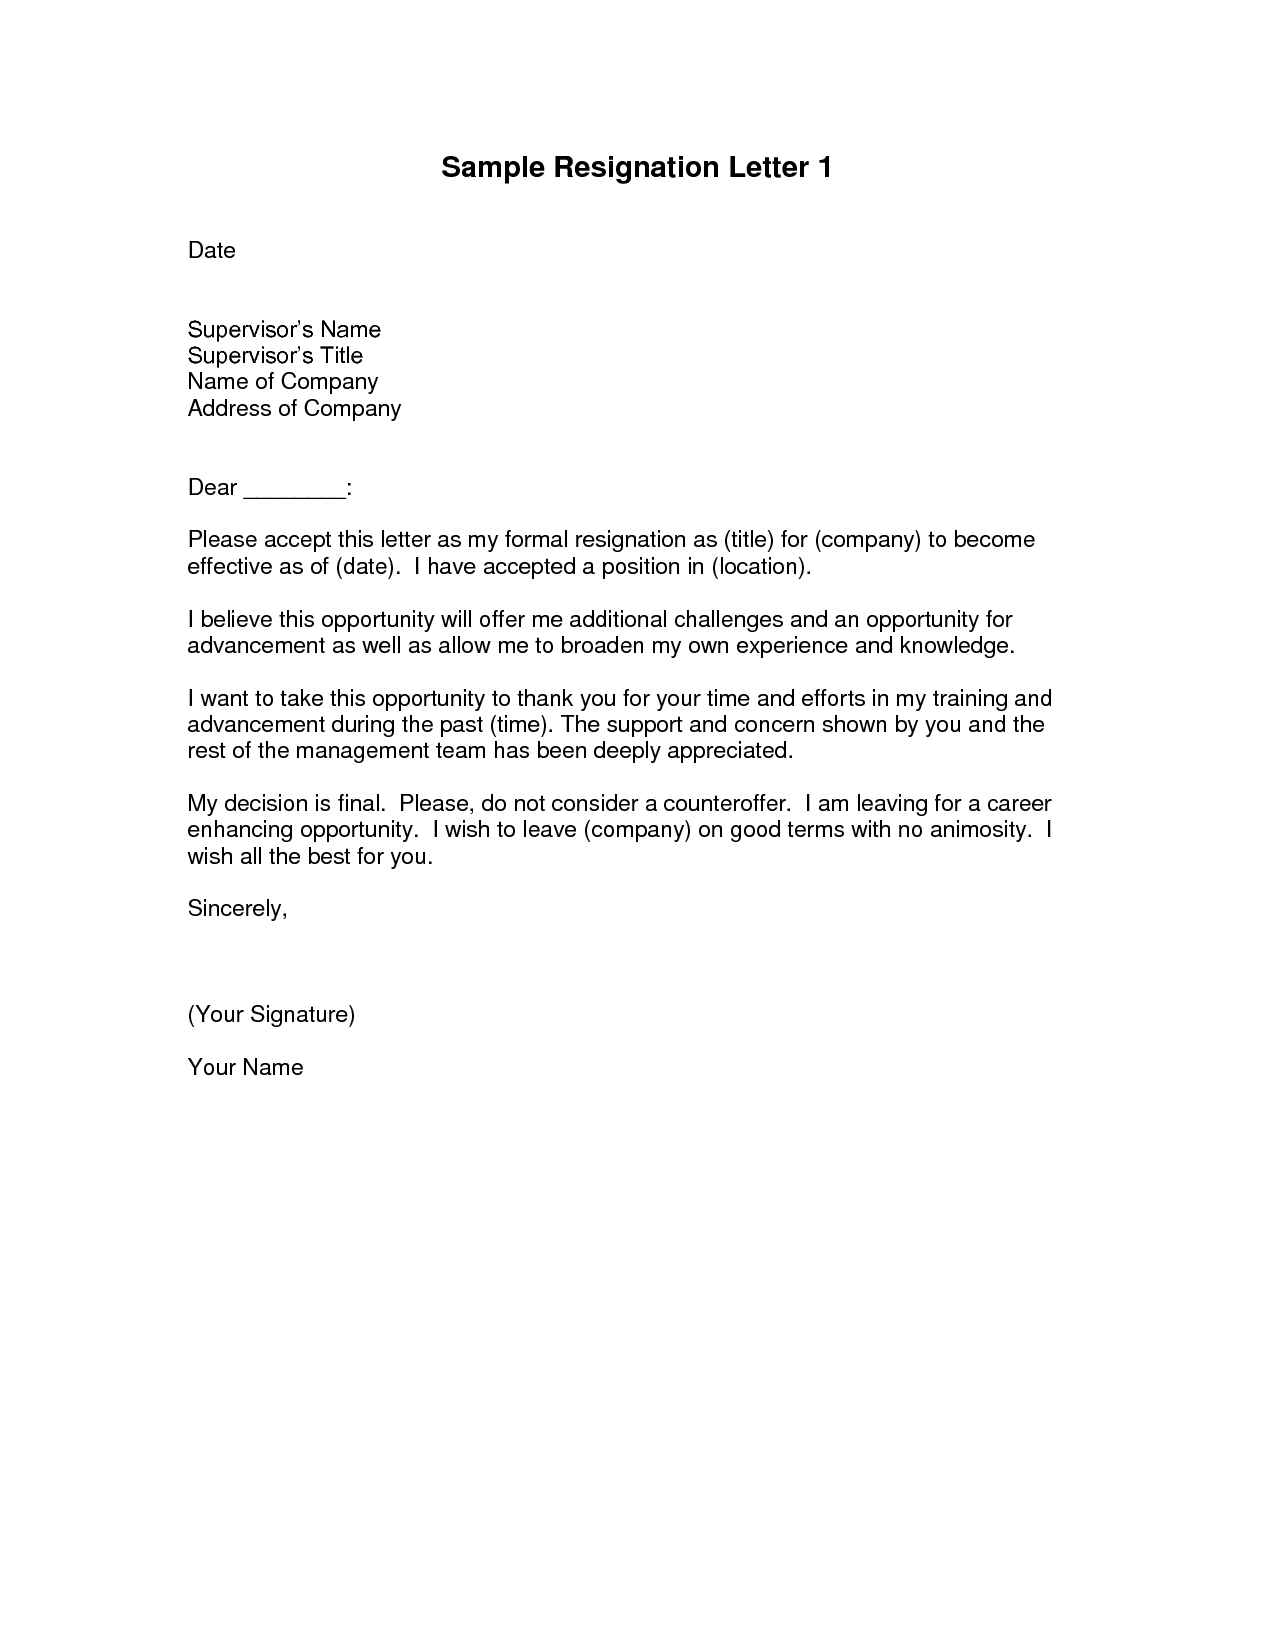 6 sample resignation letter global strategic sourcing